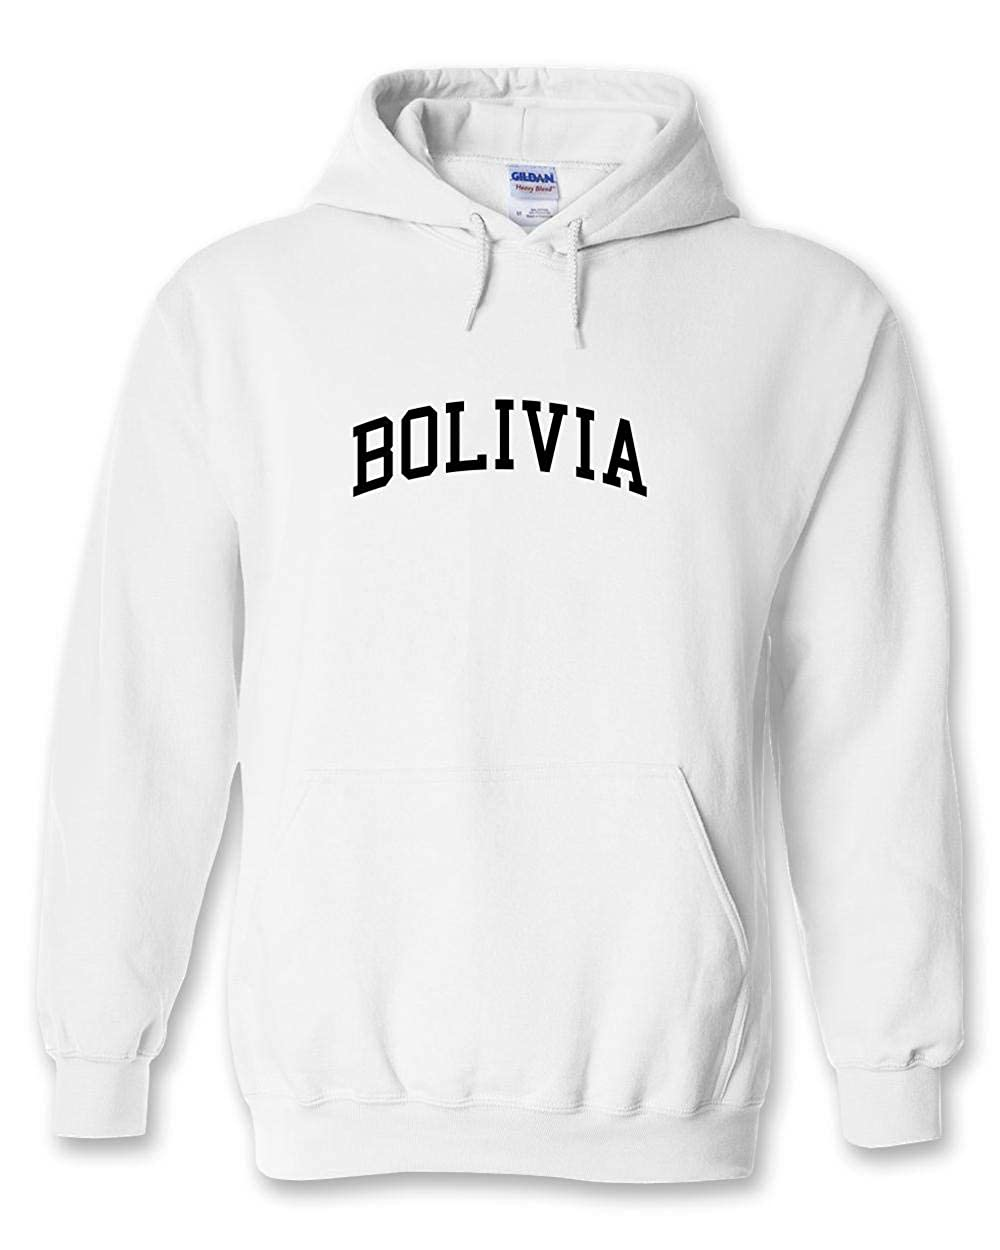 Uncensored Shirts Bolivia Hoodie